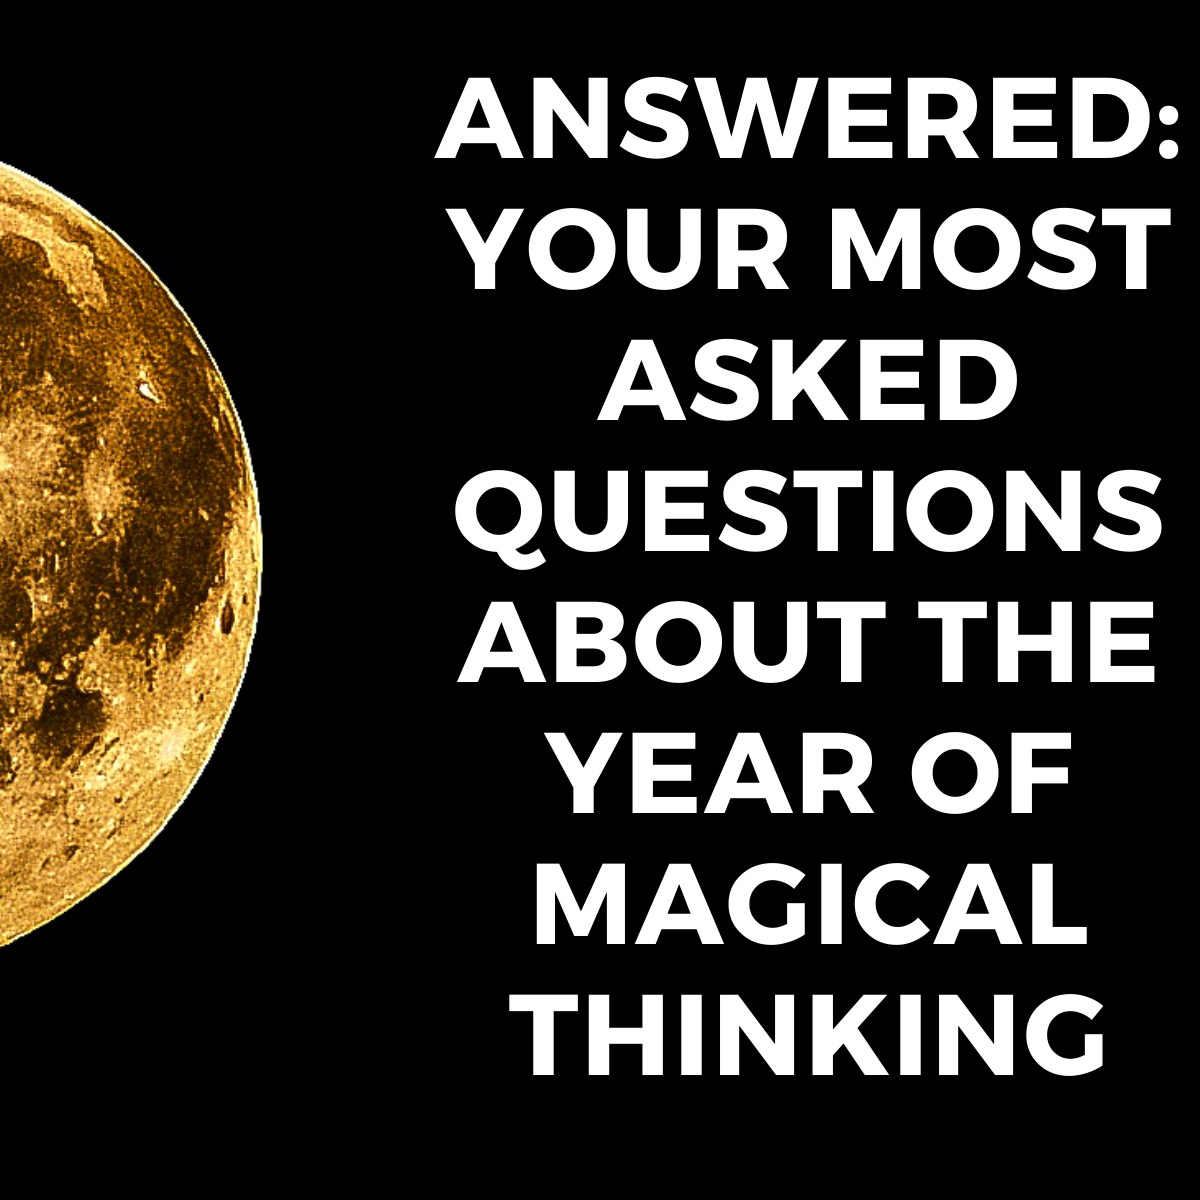 Answered: Your Most Asked Questions About The Year of Magical Thinking